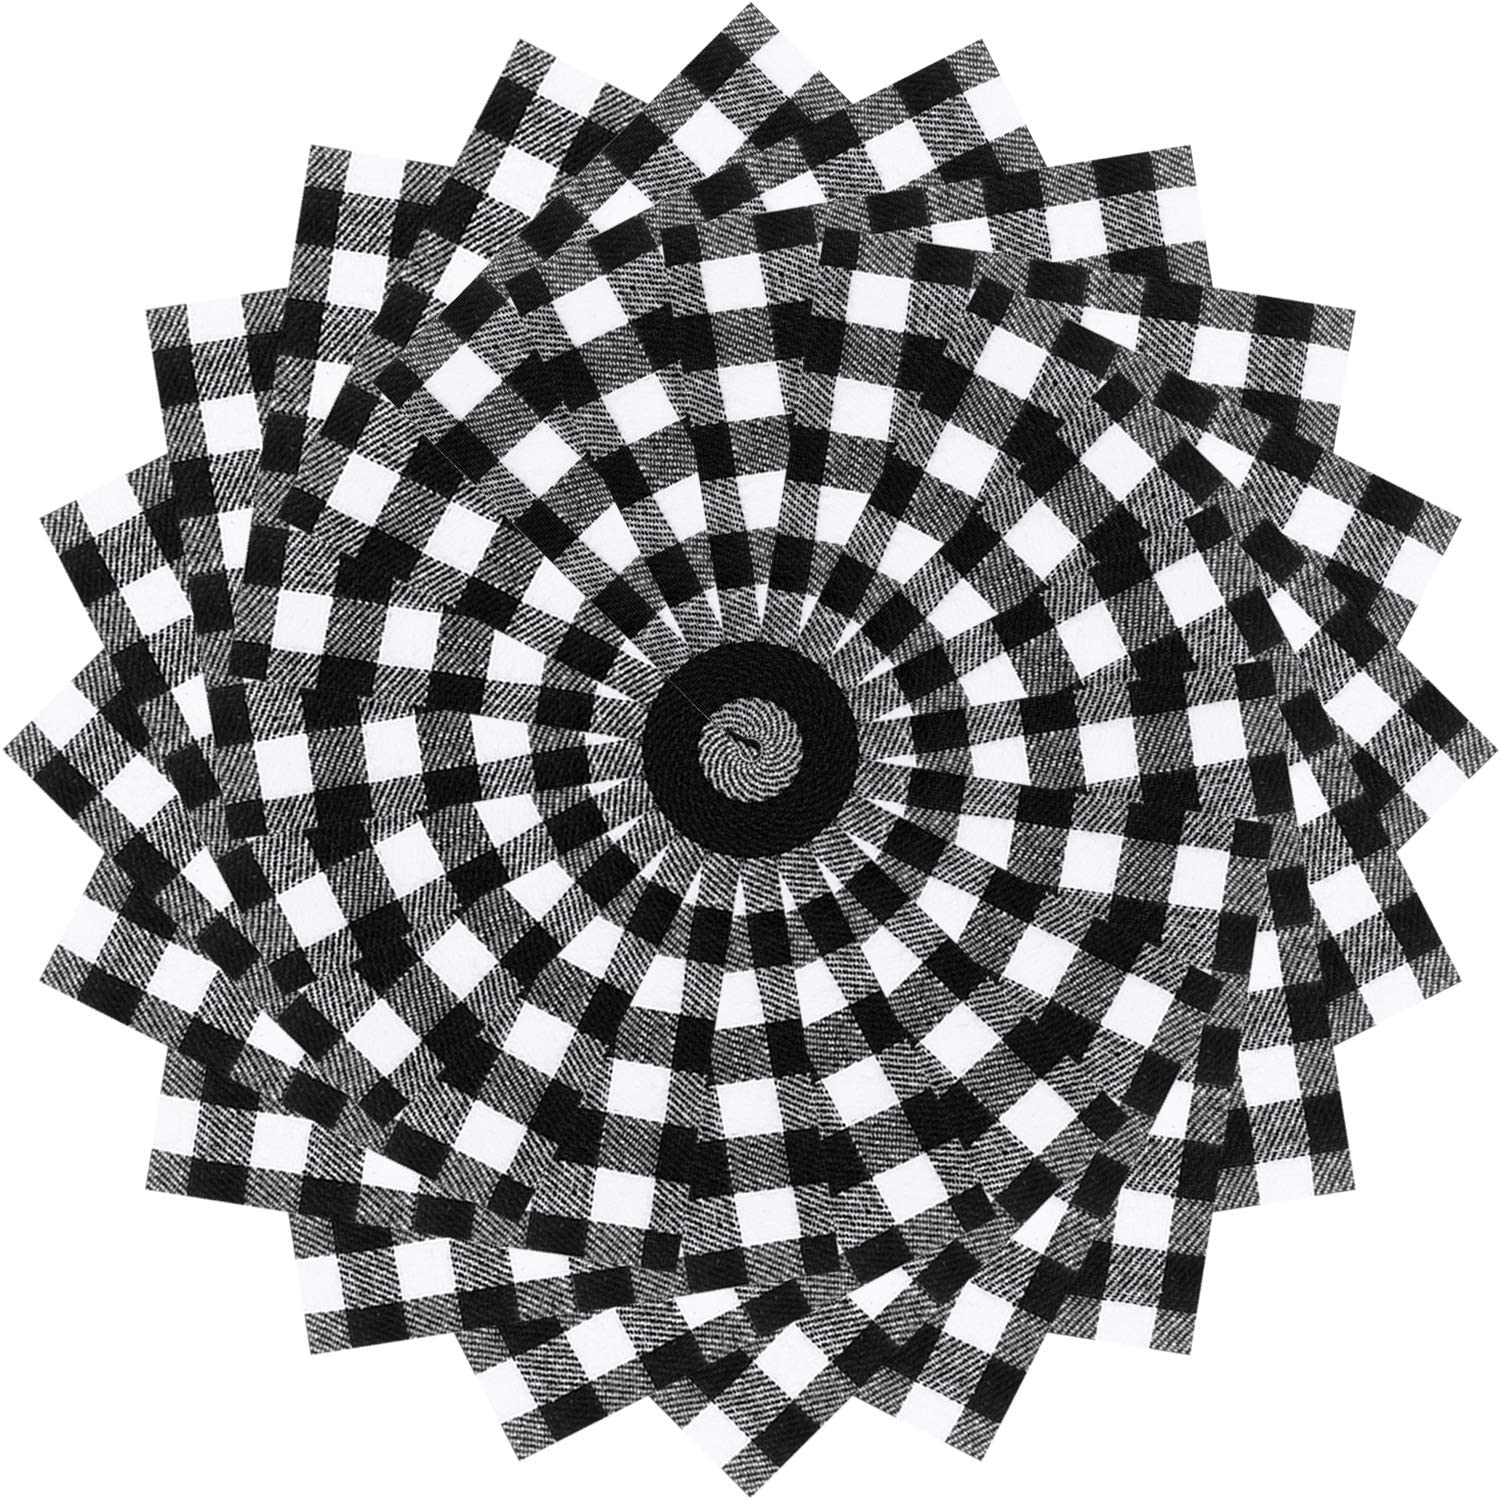 40 Pieces Christmas Precut Fabric Cotton Quilting Fabric Squares Black and White Plaid Sewing Fabric for DIY Craft Sewing Quilting, 5.9 x 5.9 Inches